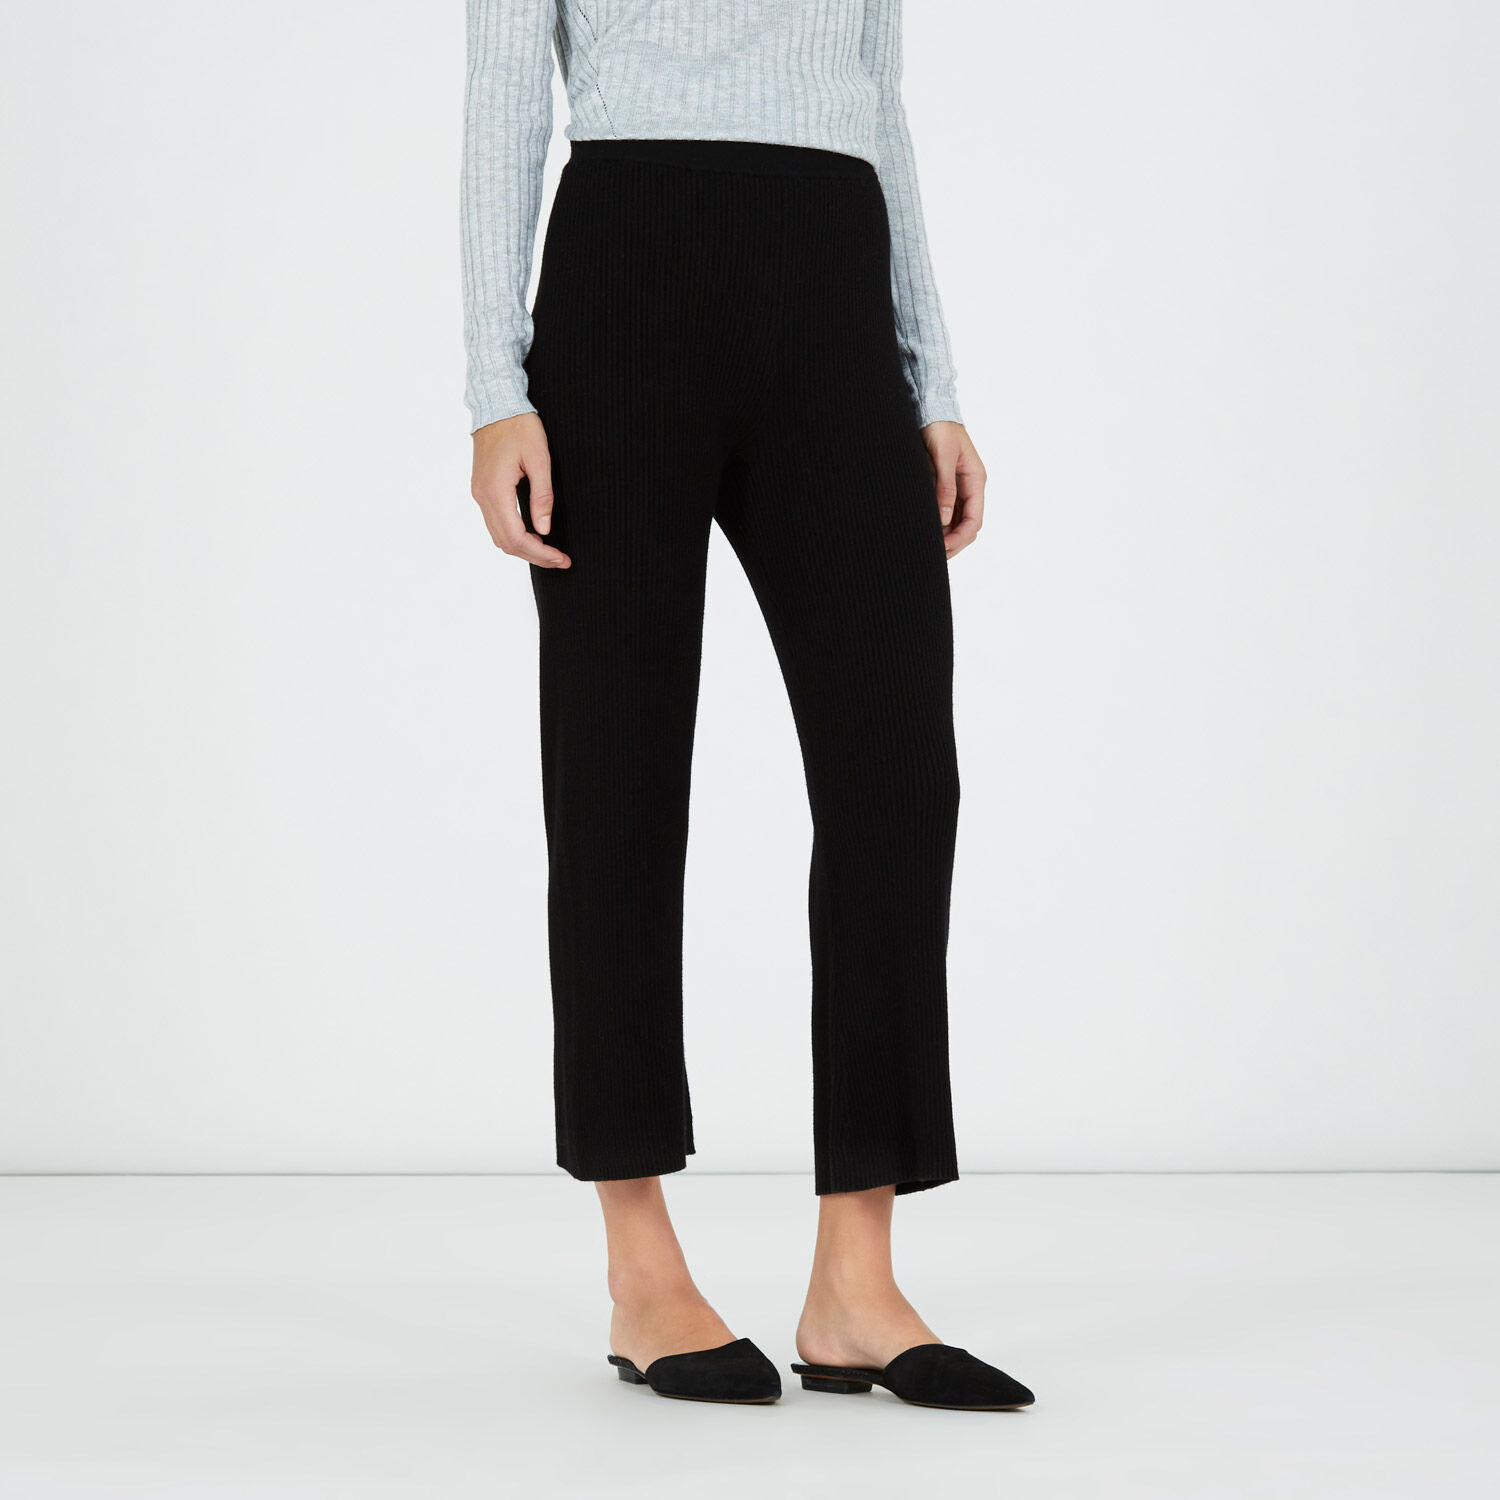 Warehouse, RIBBED TROUSERS Black 1